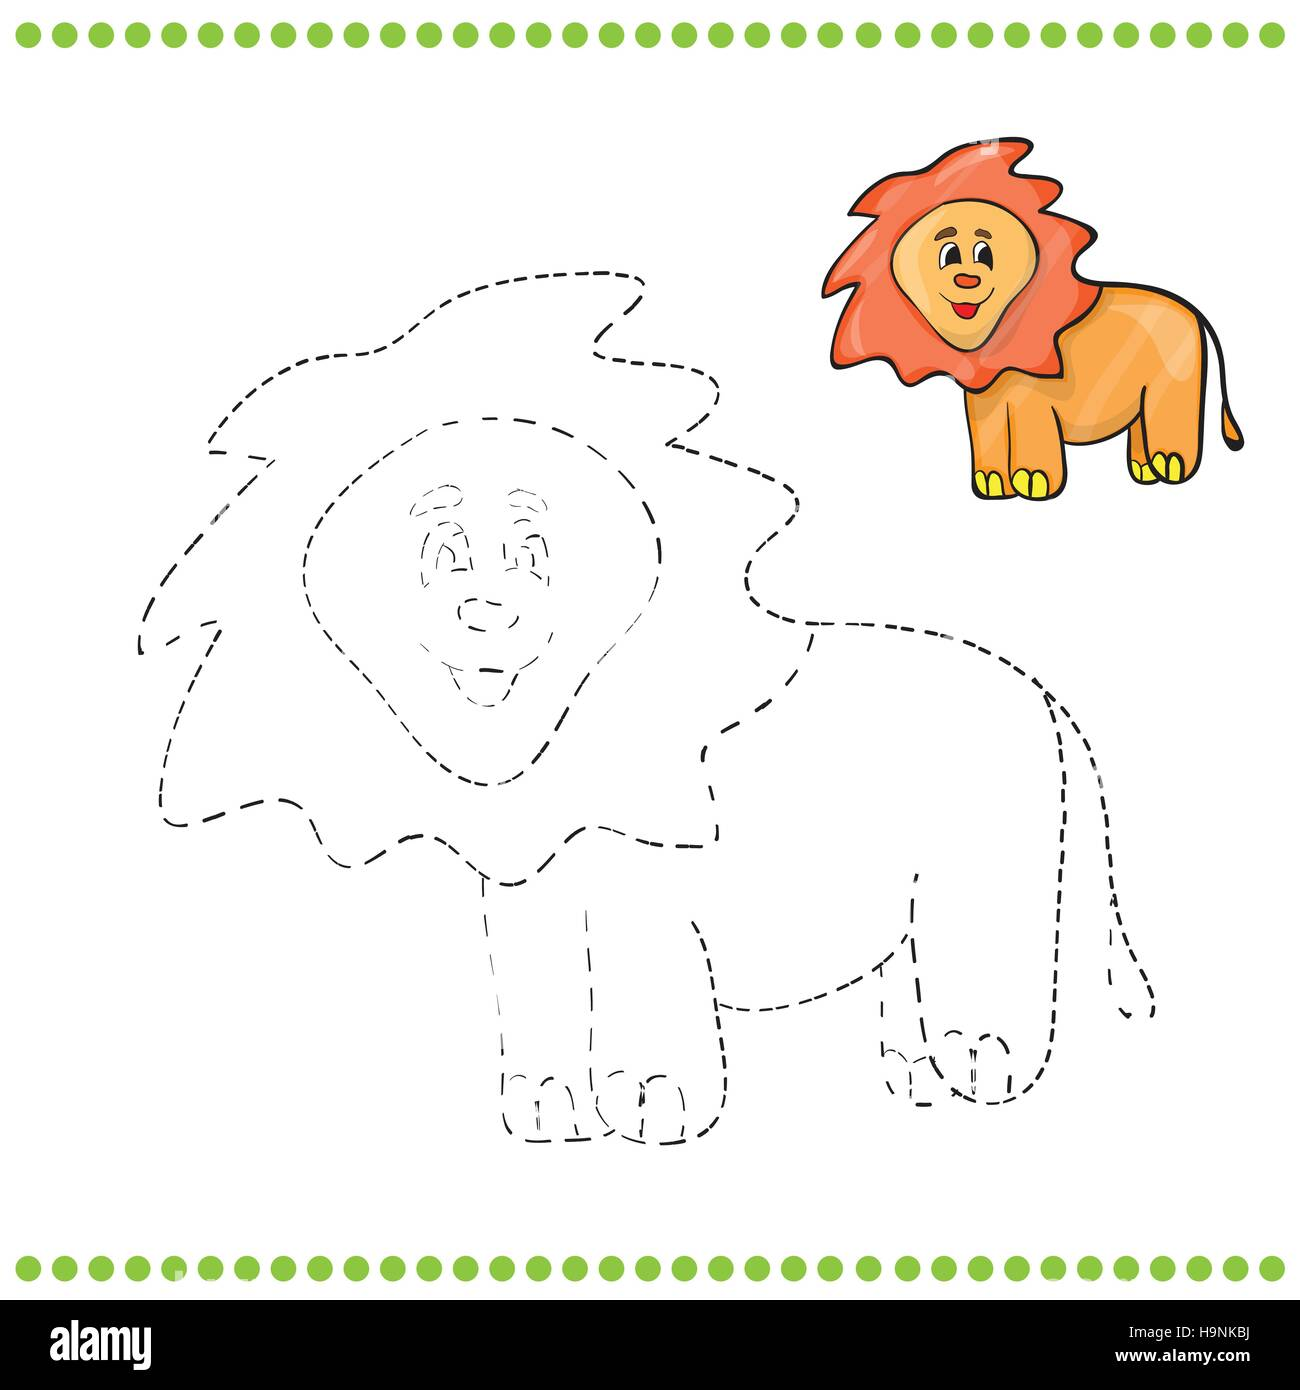 Connect the dots and coloring page - lion Stock Vector Art ...